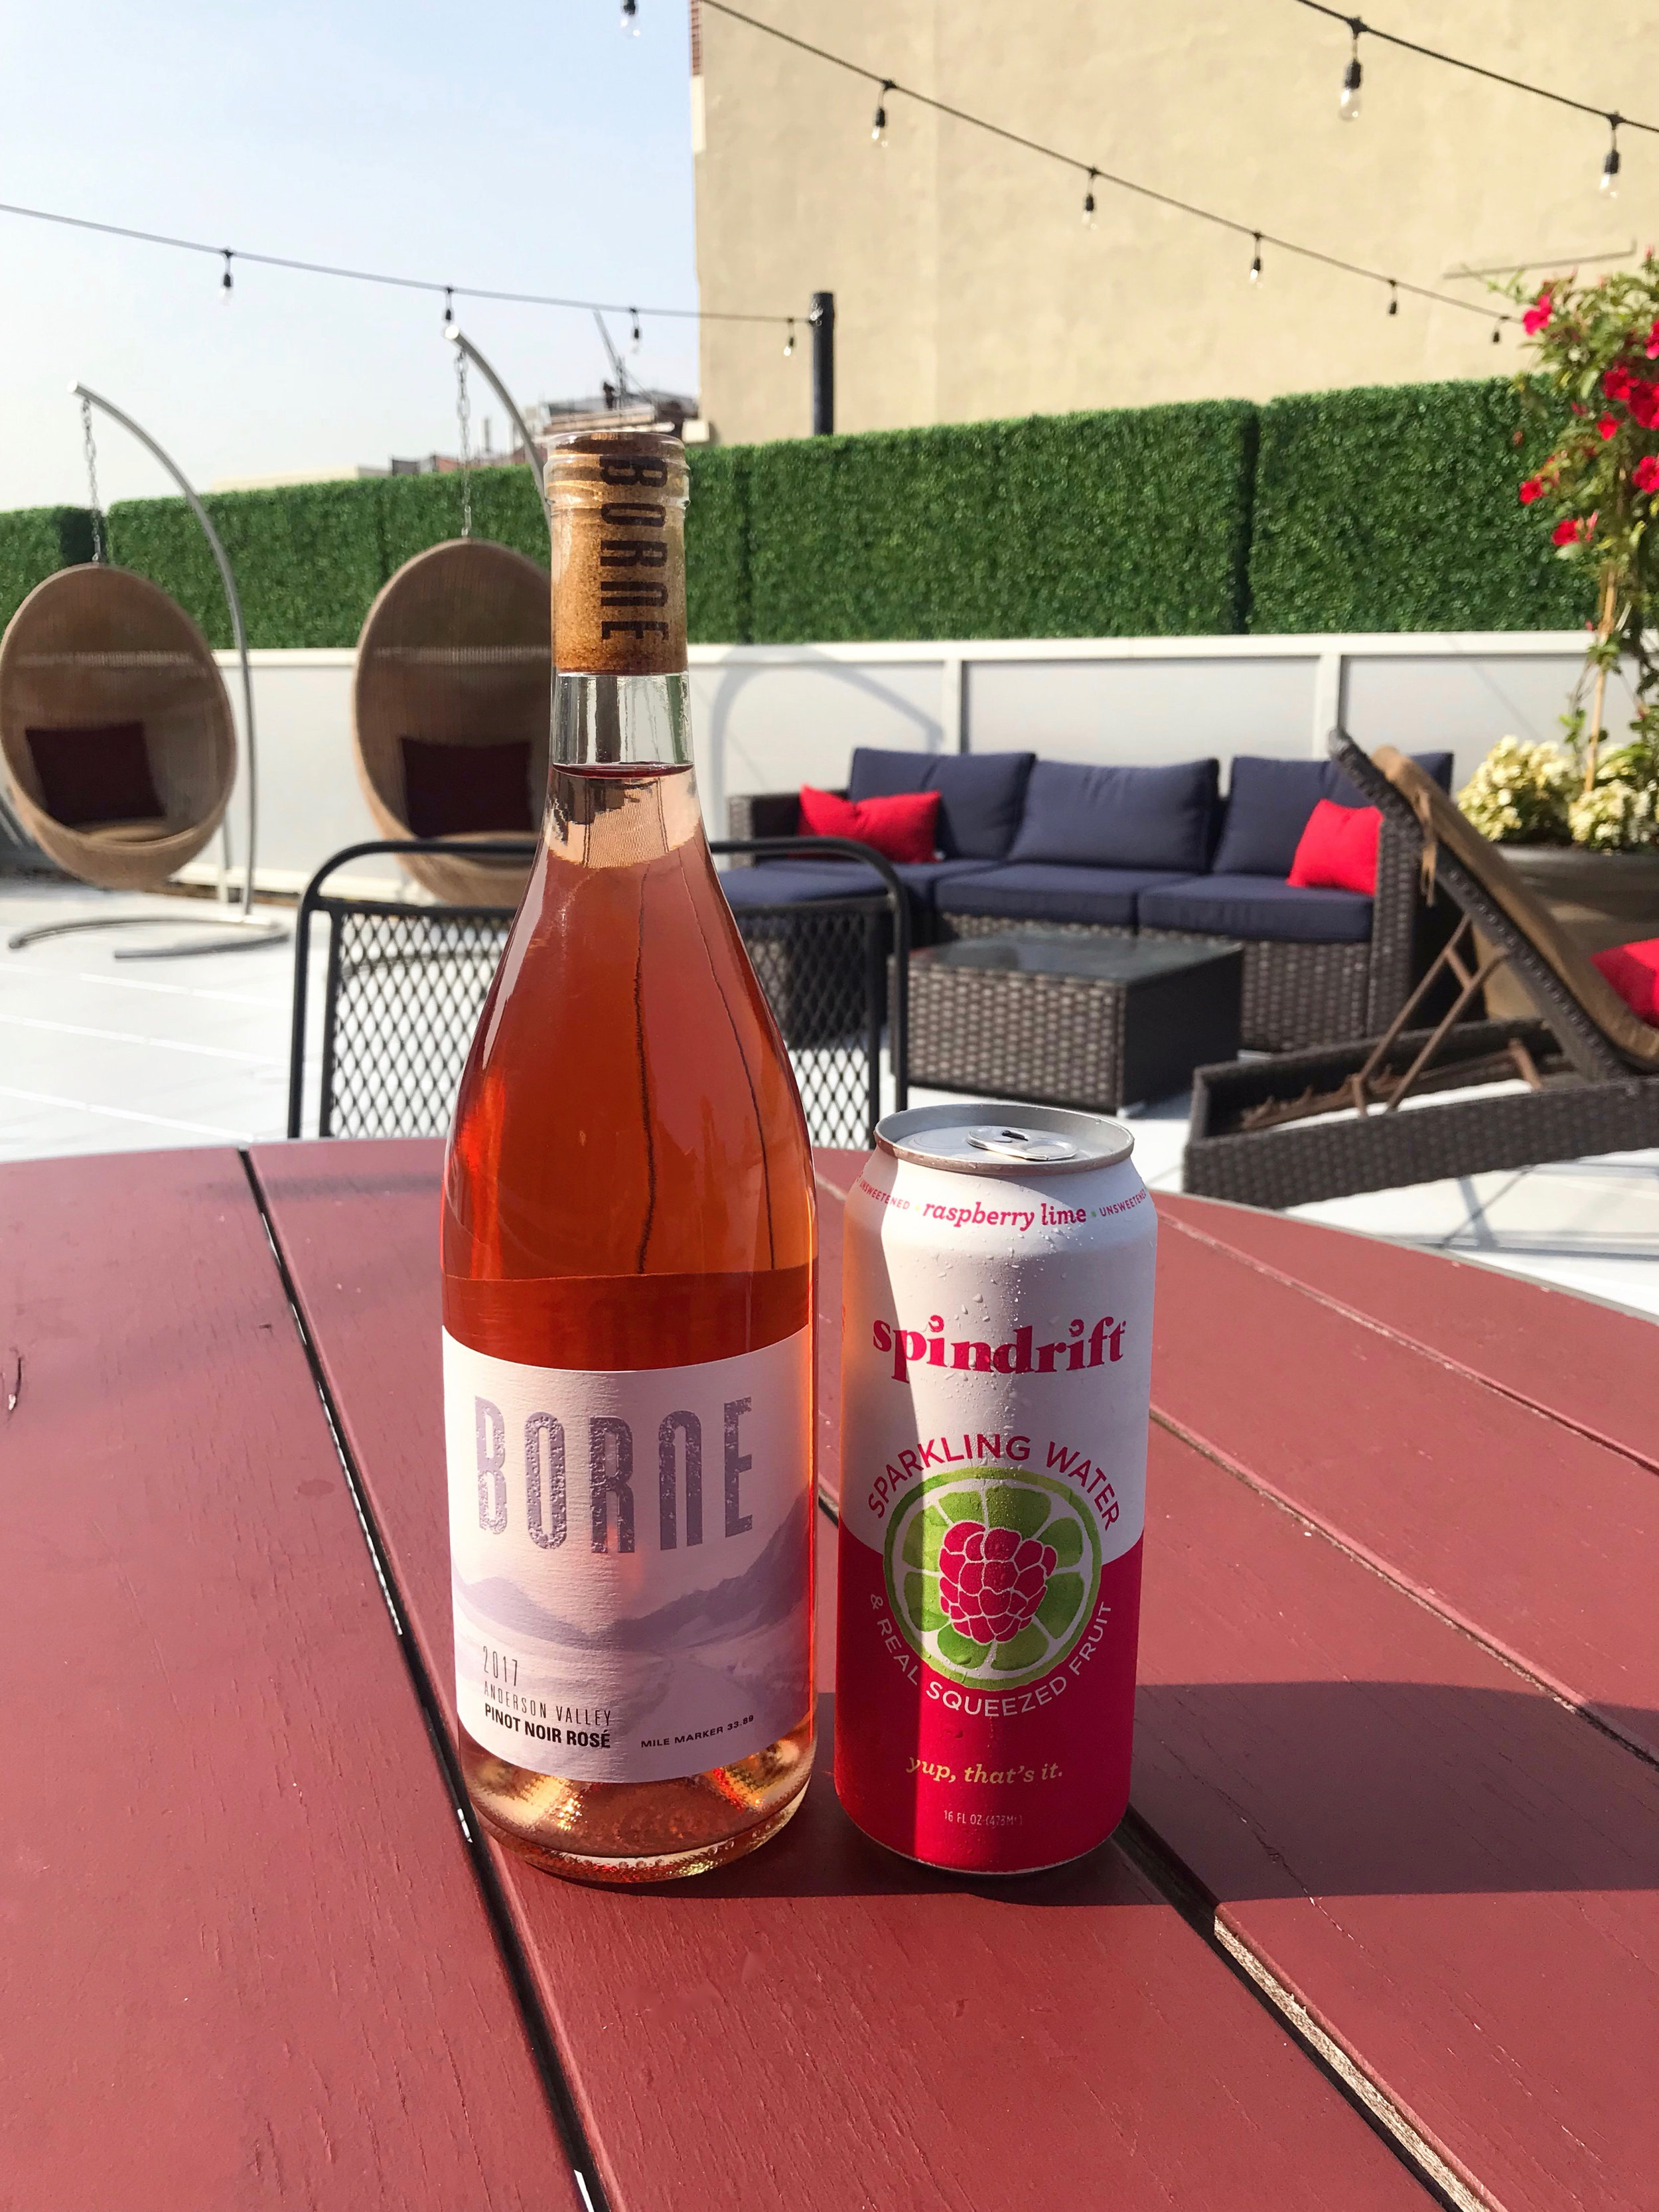 Image of bottle of rosé and can of Spindrift on red wooden table on sunny rooftop with patio furniture and string lights